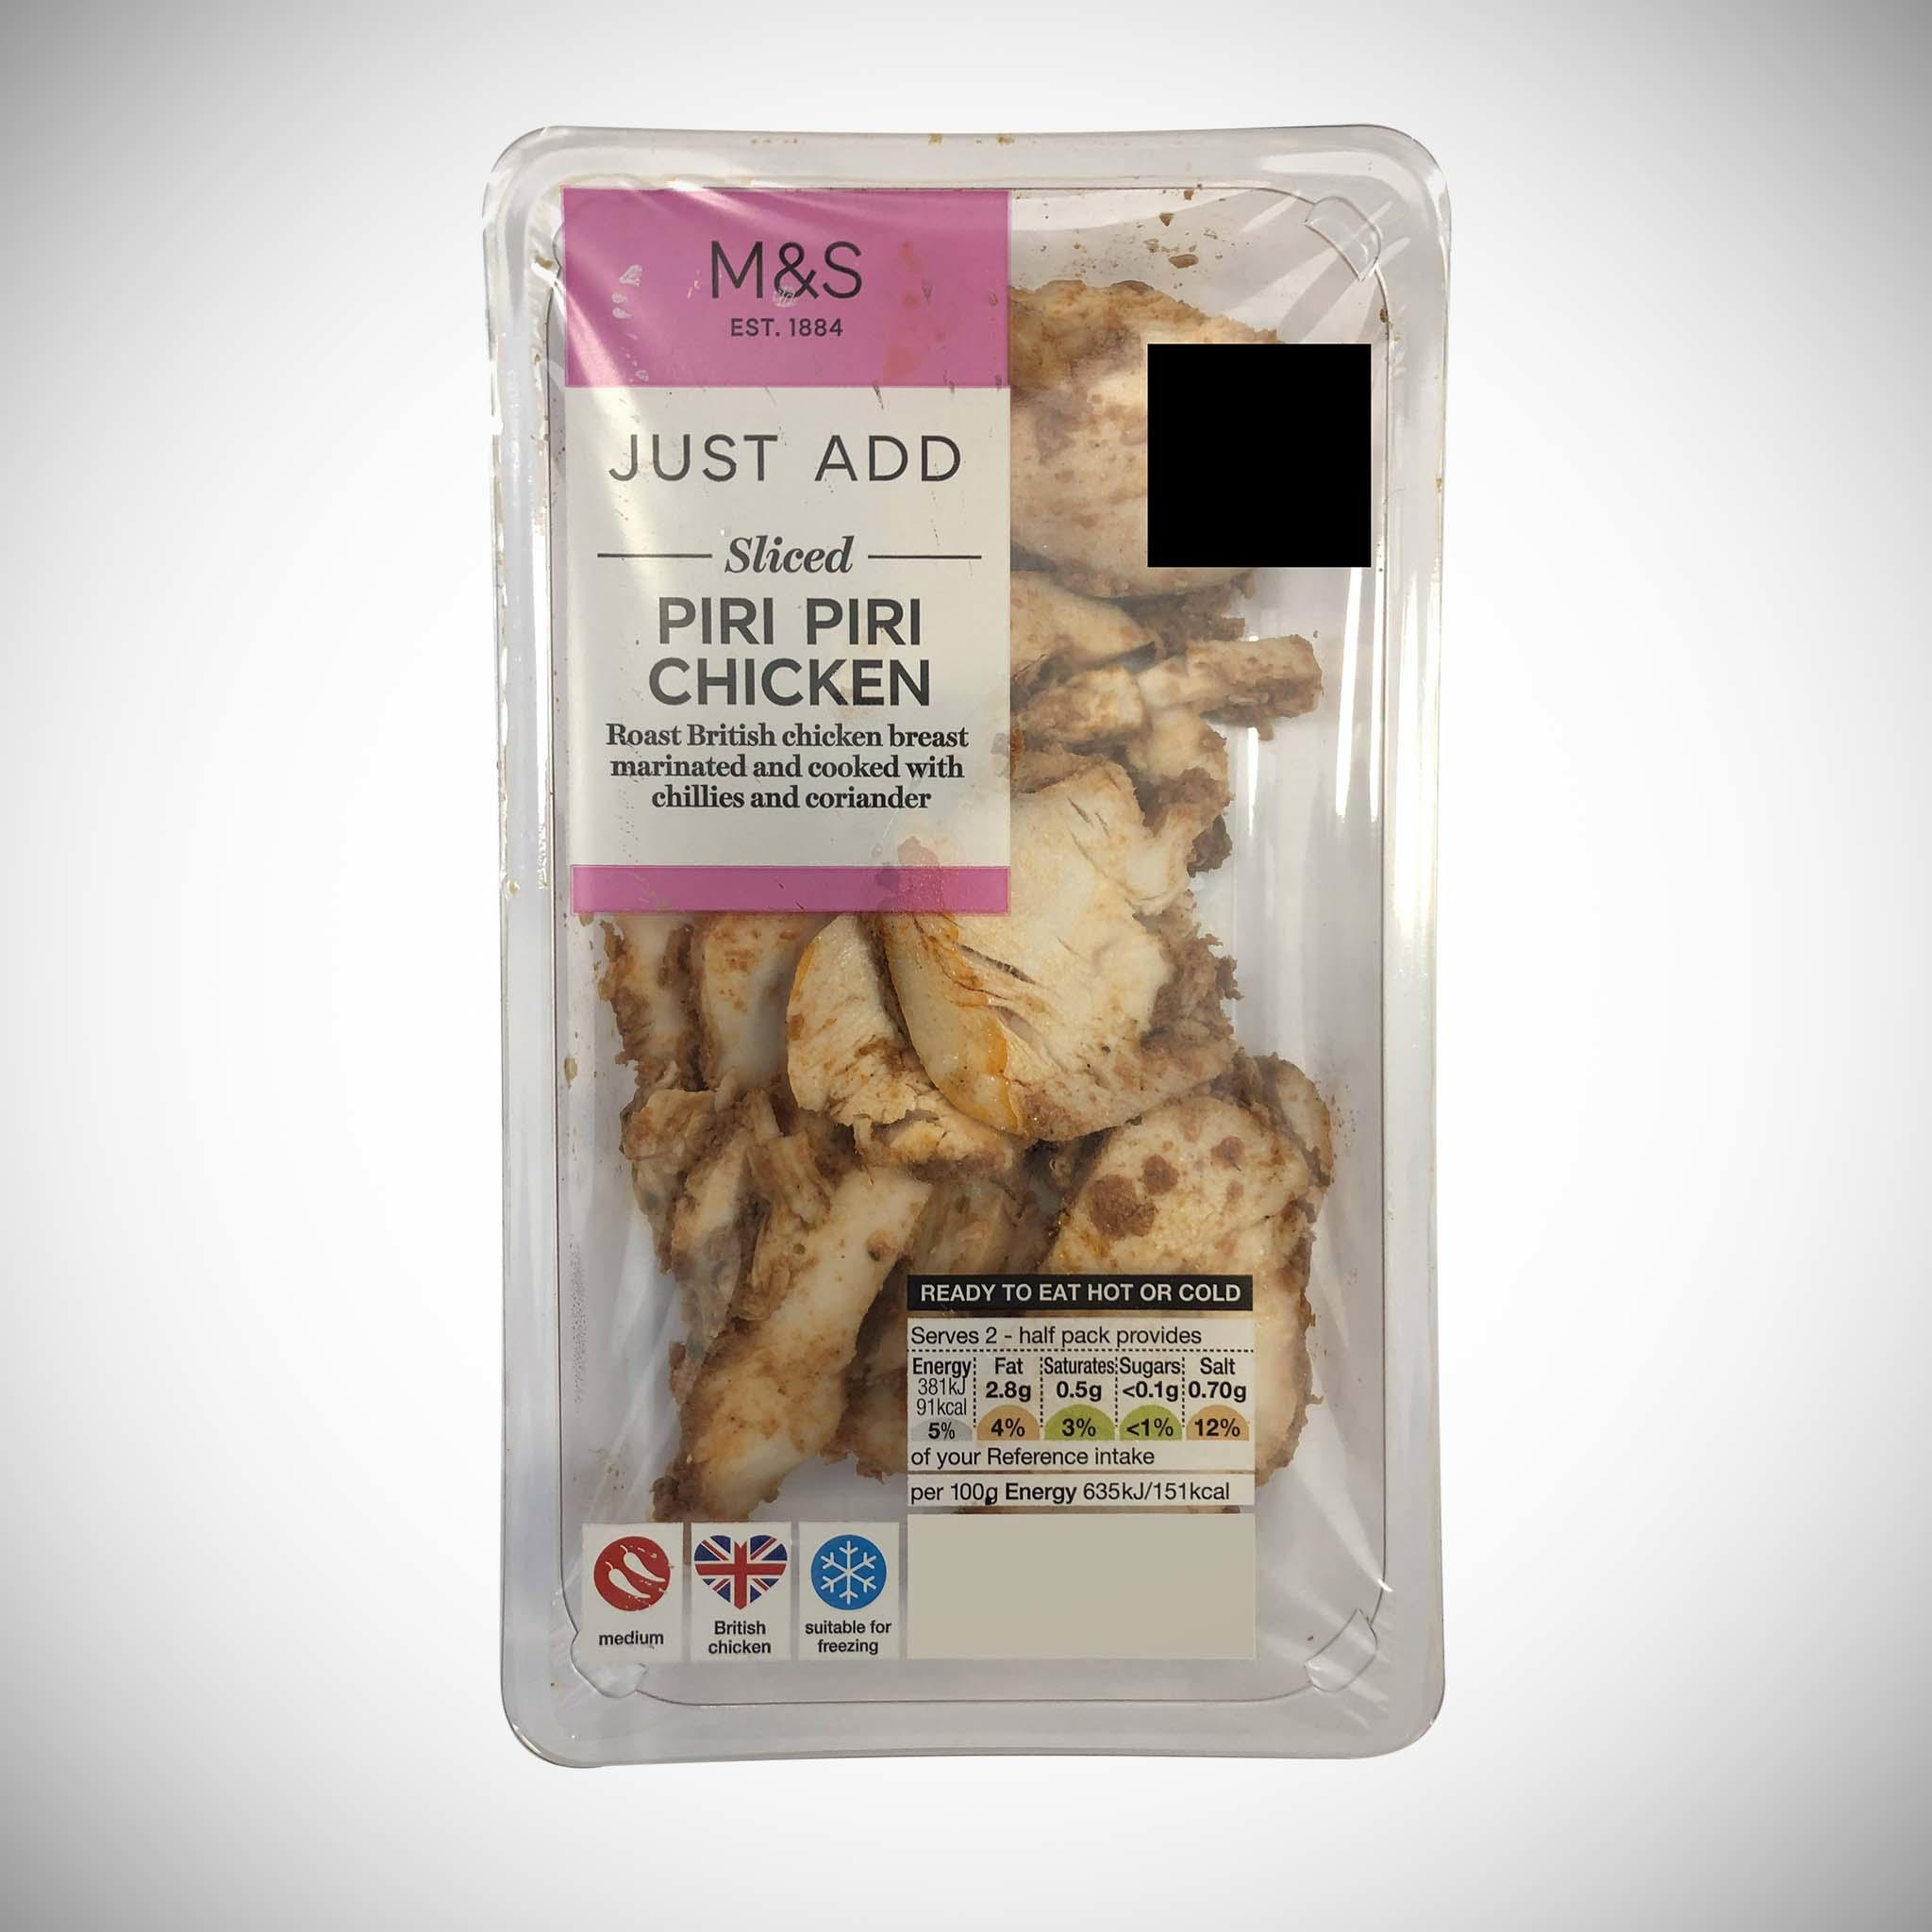 Just Add Sliced Piri Piri Chicken